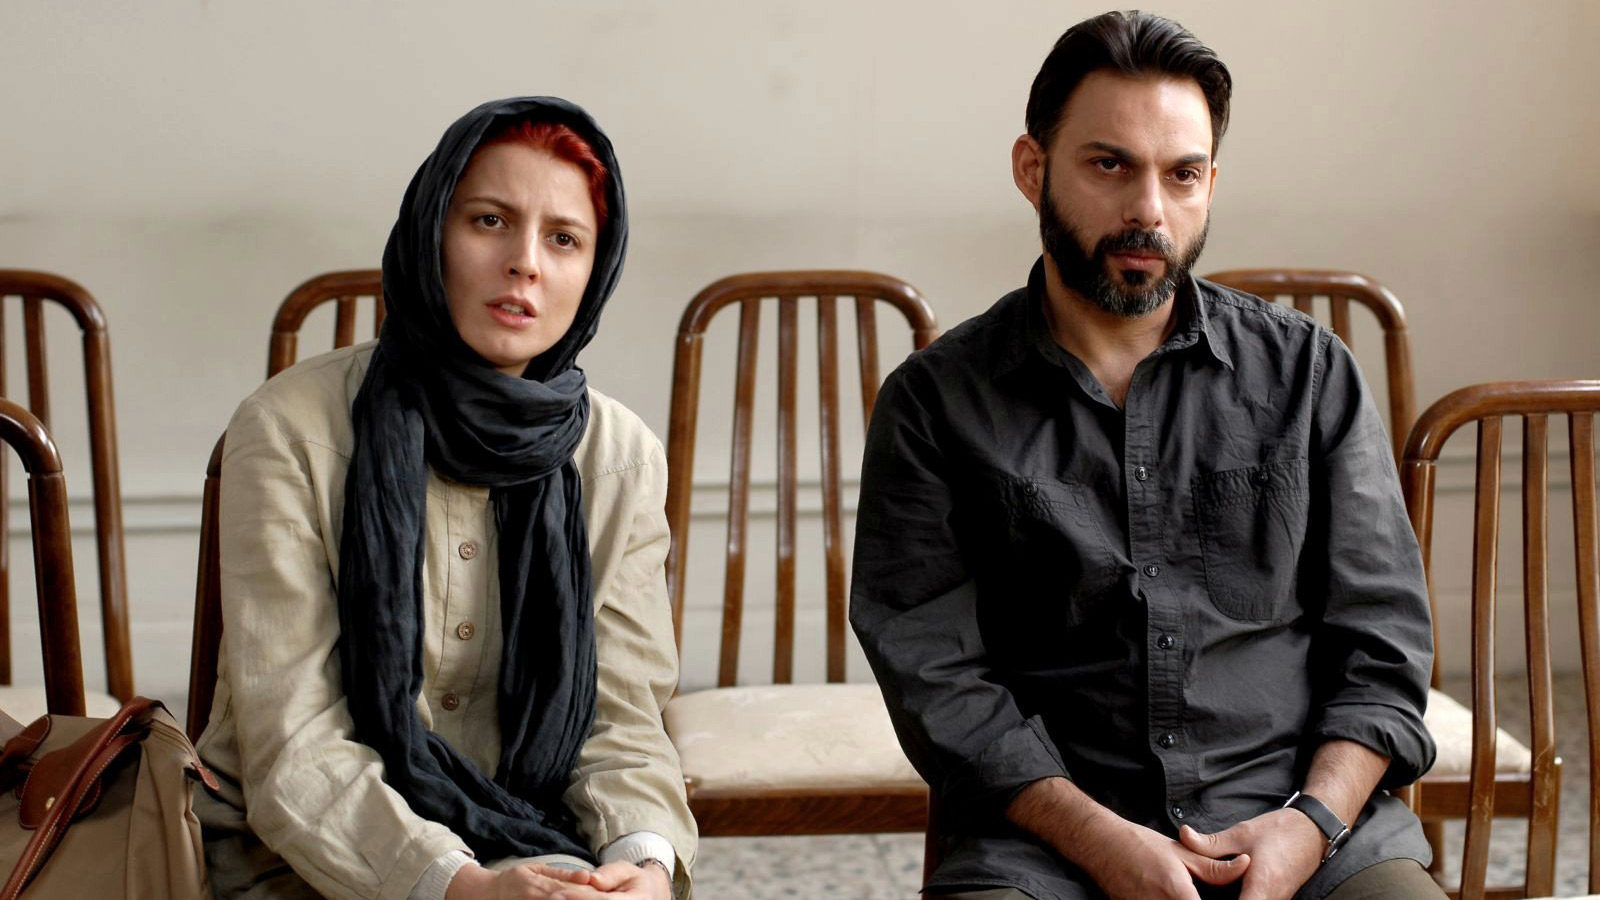 AFI Fest 2011: A Separation, The Color Wheel, & Green